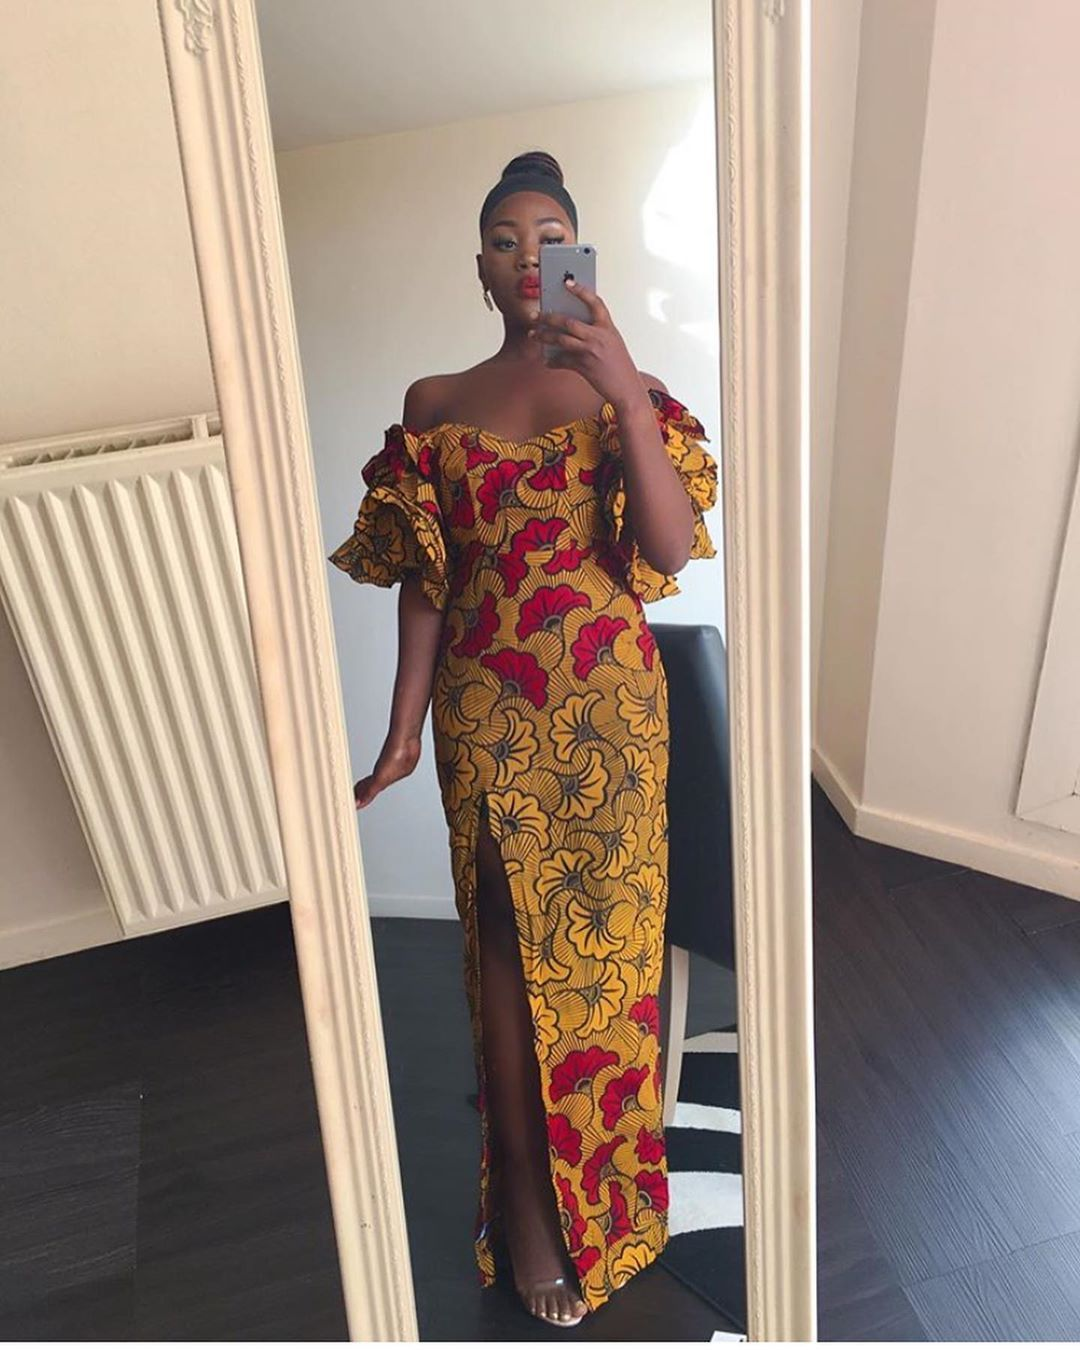 """AFRICAN Touch' on Instagram: """"#teamtous_en_wax �Beautiful africanwoman #Africafashion #wax #style #girl #mode #africa #african #pagne #picoftheday #elegance #cool…"""""""